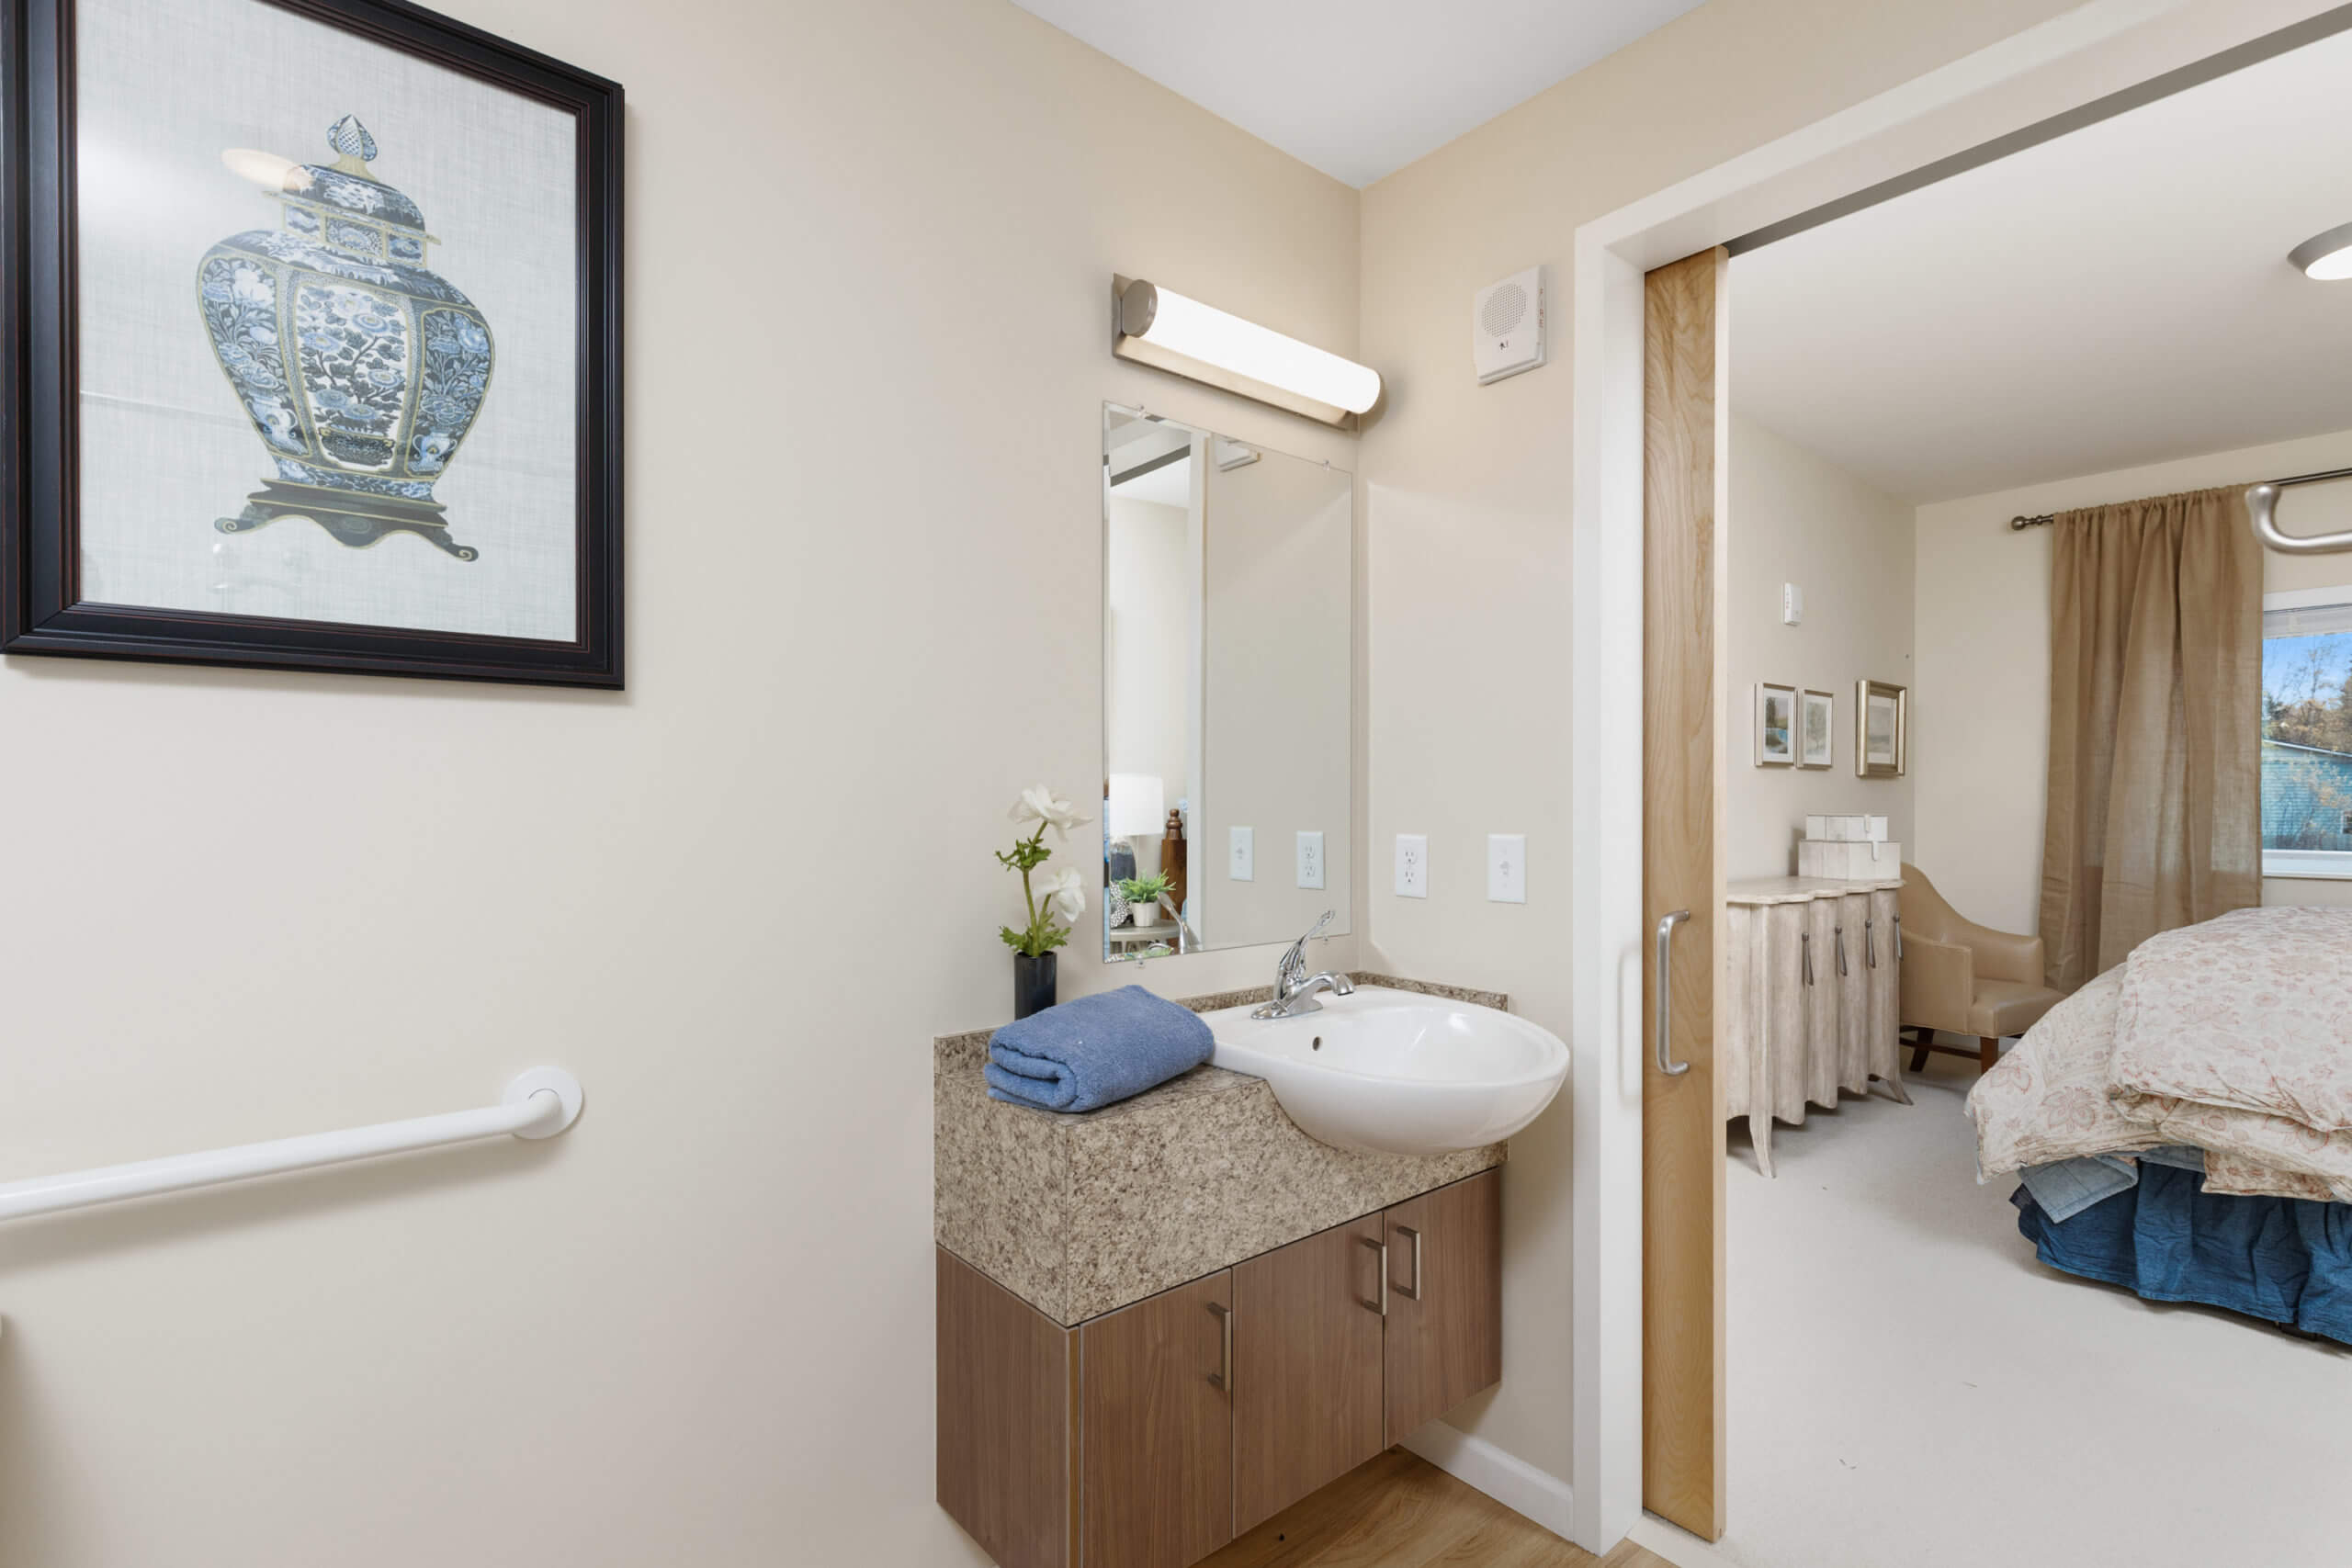 Baxter Senior Living Assisted Living - 1 Bedroom Bathroom